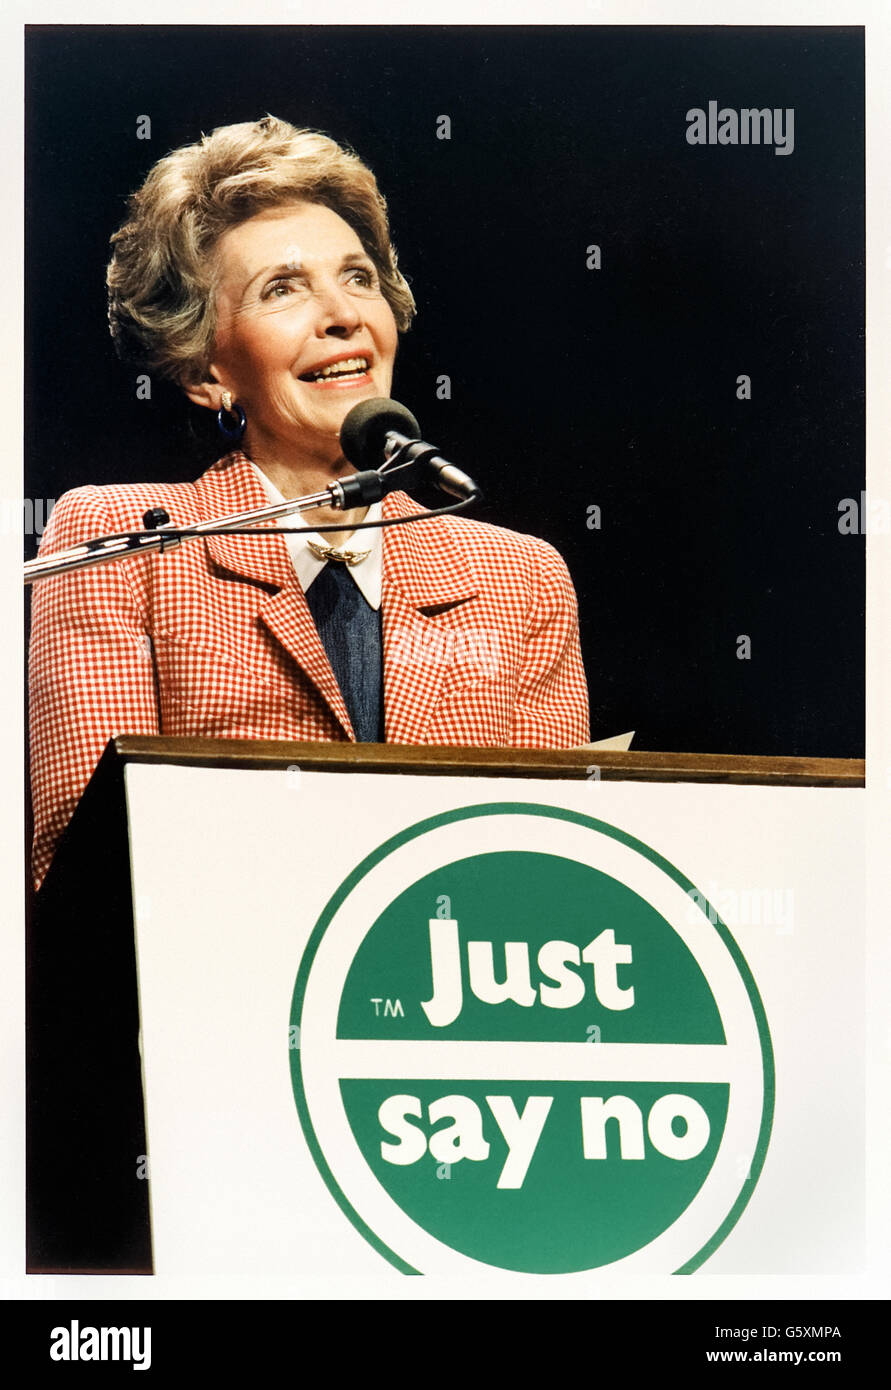 """Just Say No"" anti-drug campaign, the slogan was created and championed by First Lady Nancy Reagan shown here giving - Stock Image"